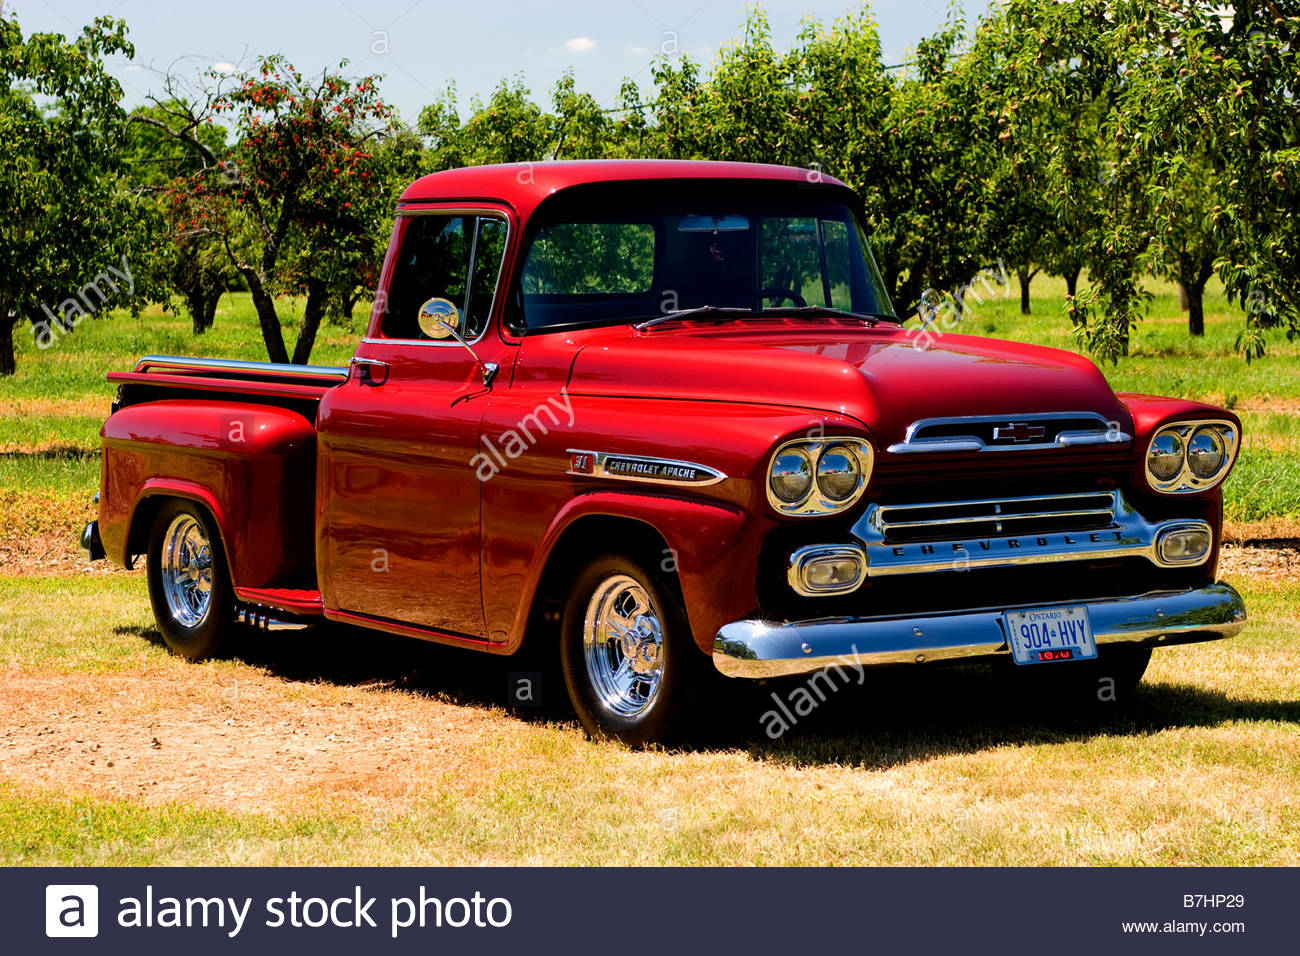 1959 Chevrolet Apache Pics, Vehicles Collection